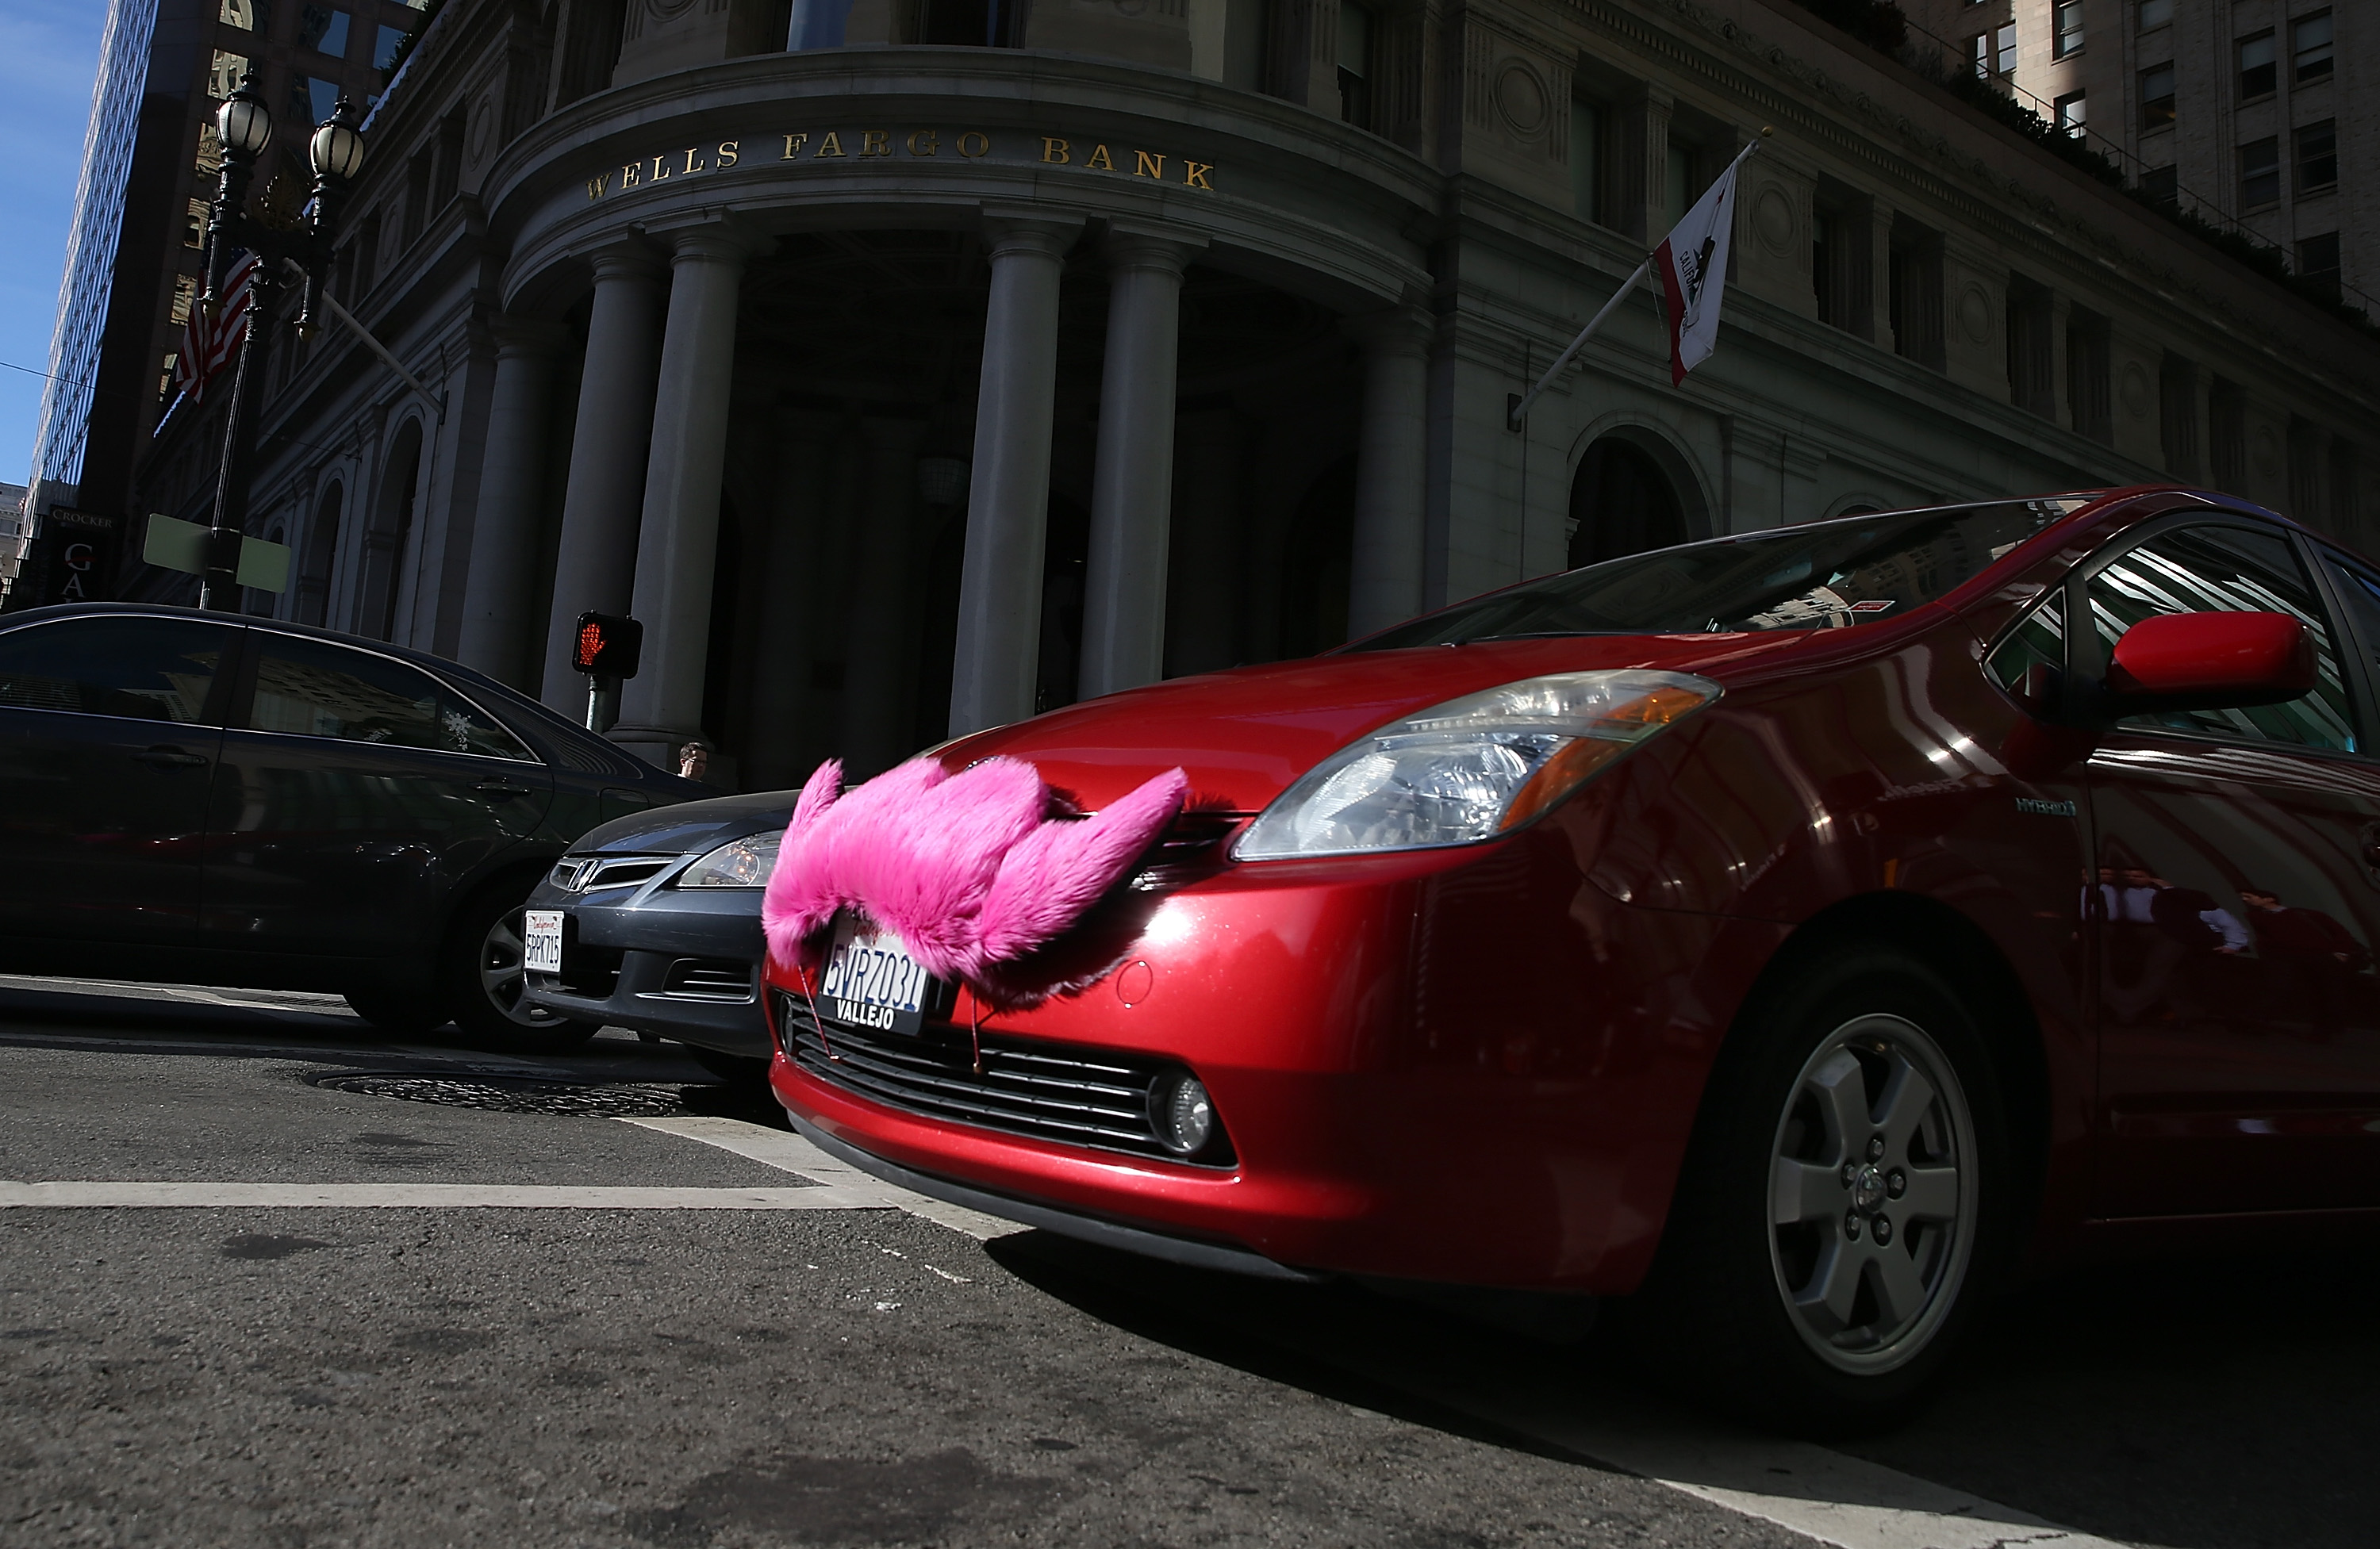 SAN FRANCISCO, CA - JANUARY 21: A Lyft car drives along Montgomery Street on January 21, 2014 in San Francisco, California. As ridesharing services like Lyft, Uber and Sidecar become more popular, the San Francisco Cab Driver Association is reporting that nearly one third of San Francisco's licensed taxi drivers have stopped driving taxis and have started to drive for the ridesharing services. (Photo by Justin Sullivan/Getty Images)